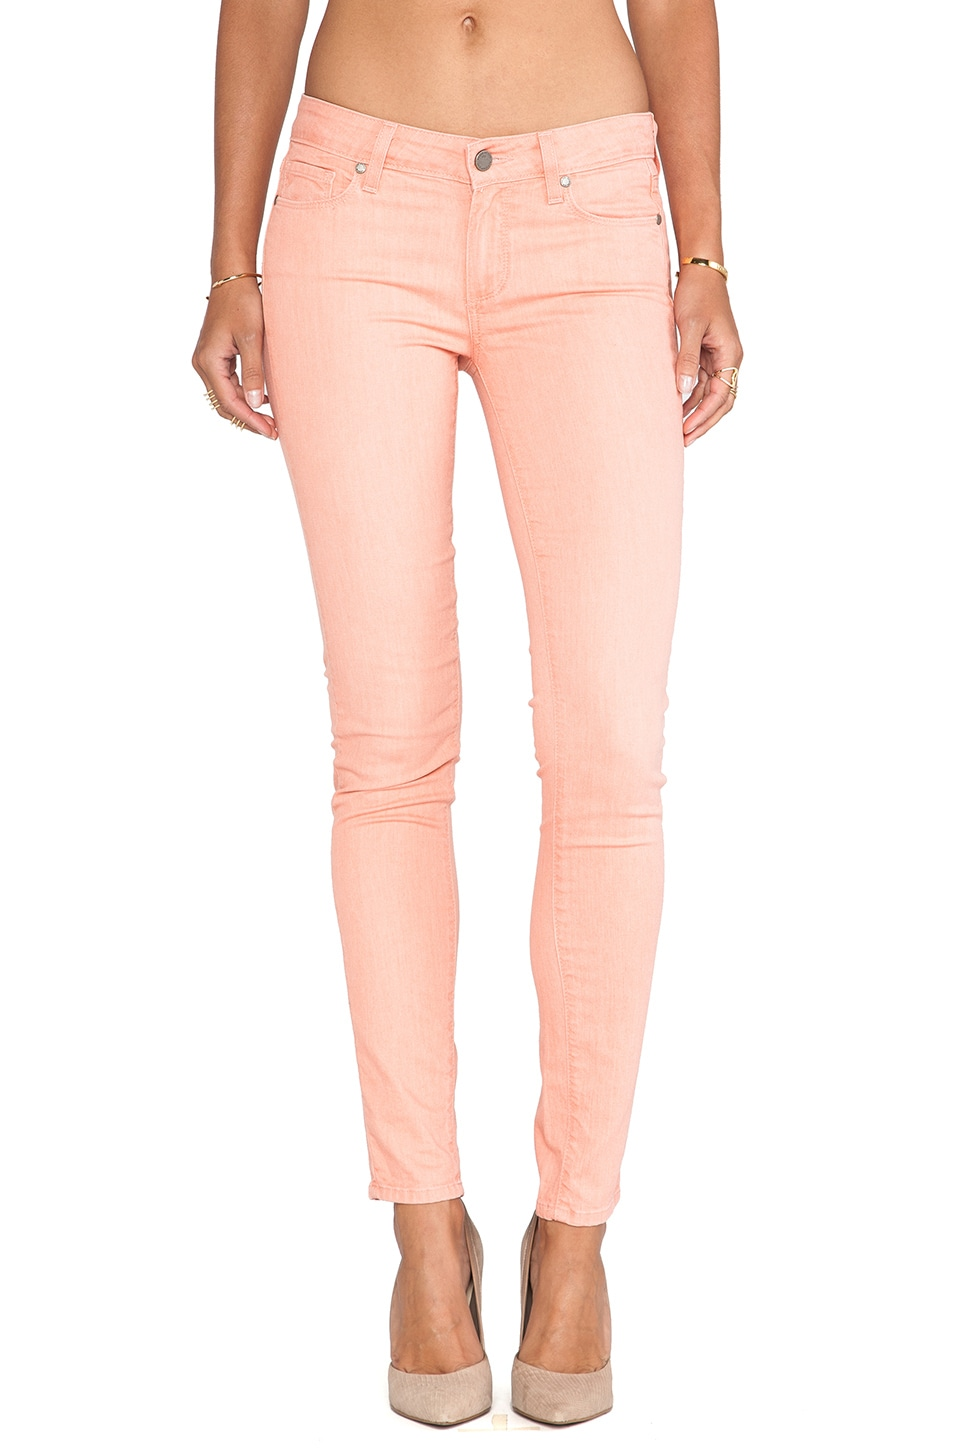 PAIGE Denim Verdugo in Pink